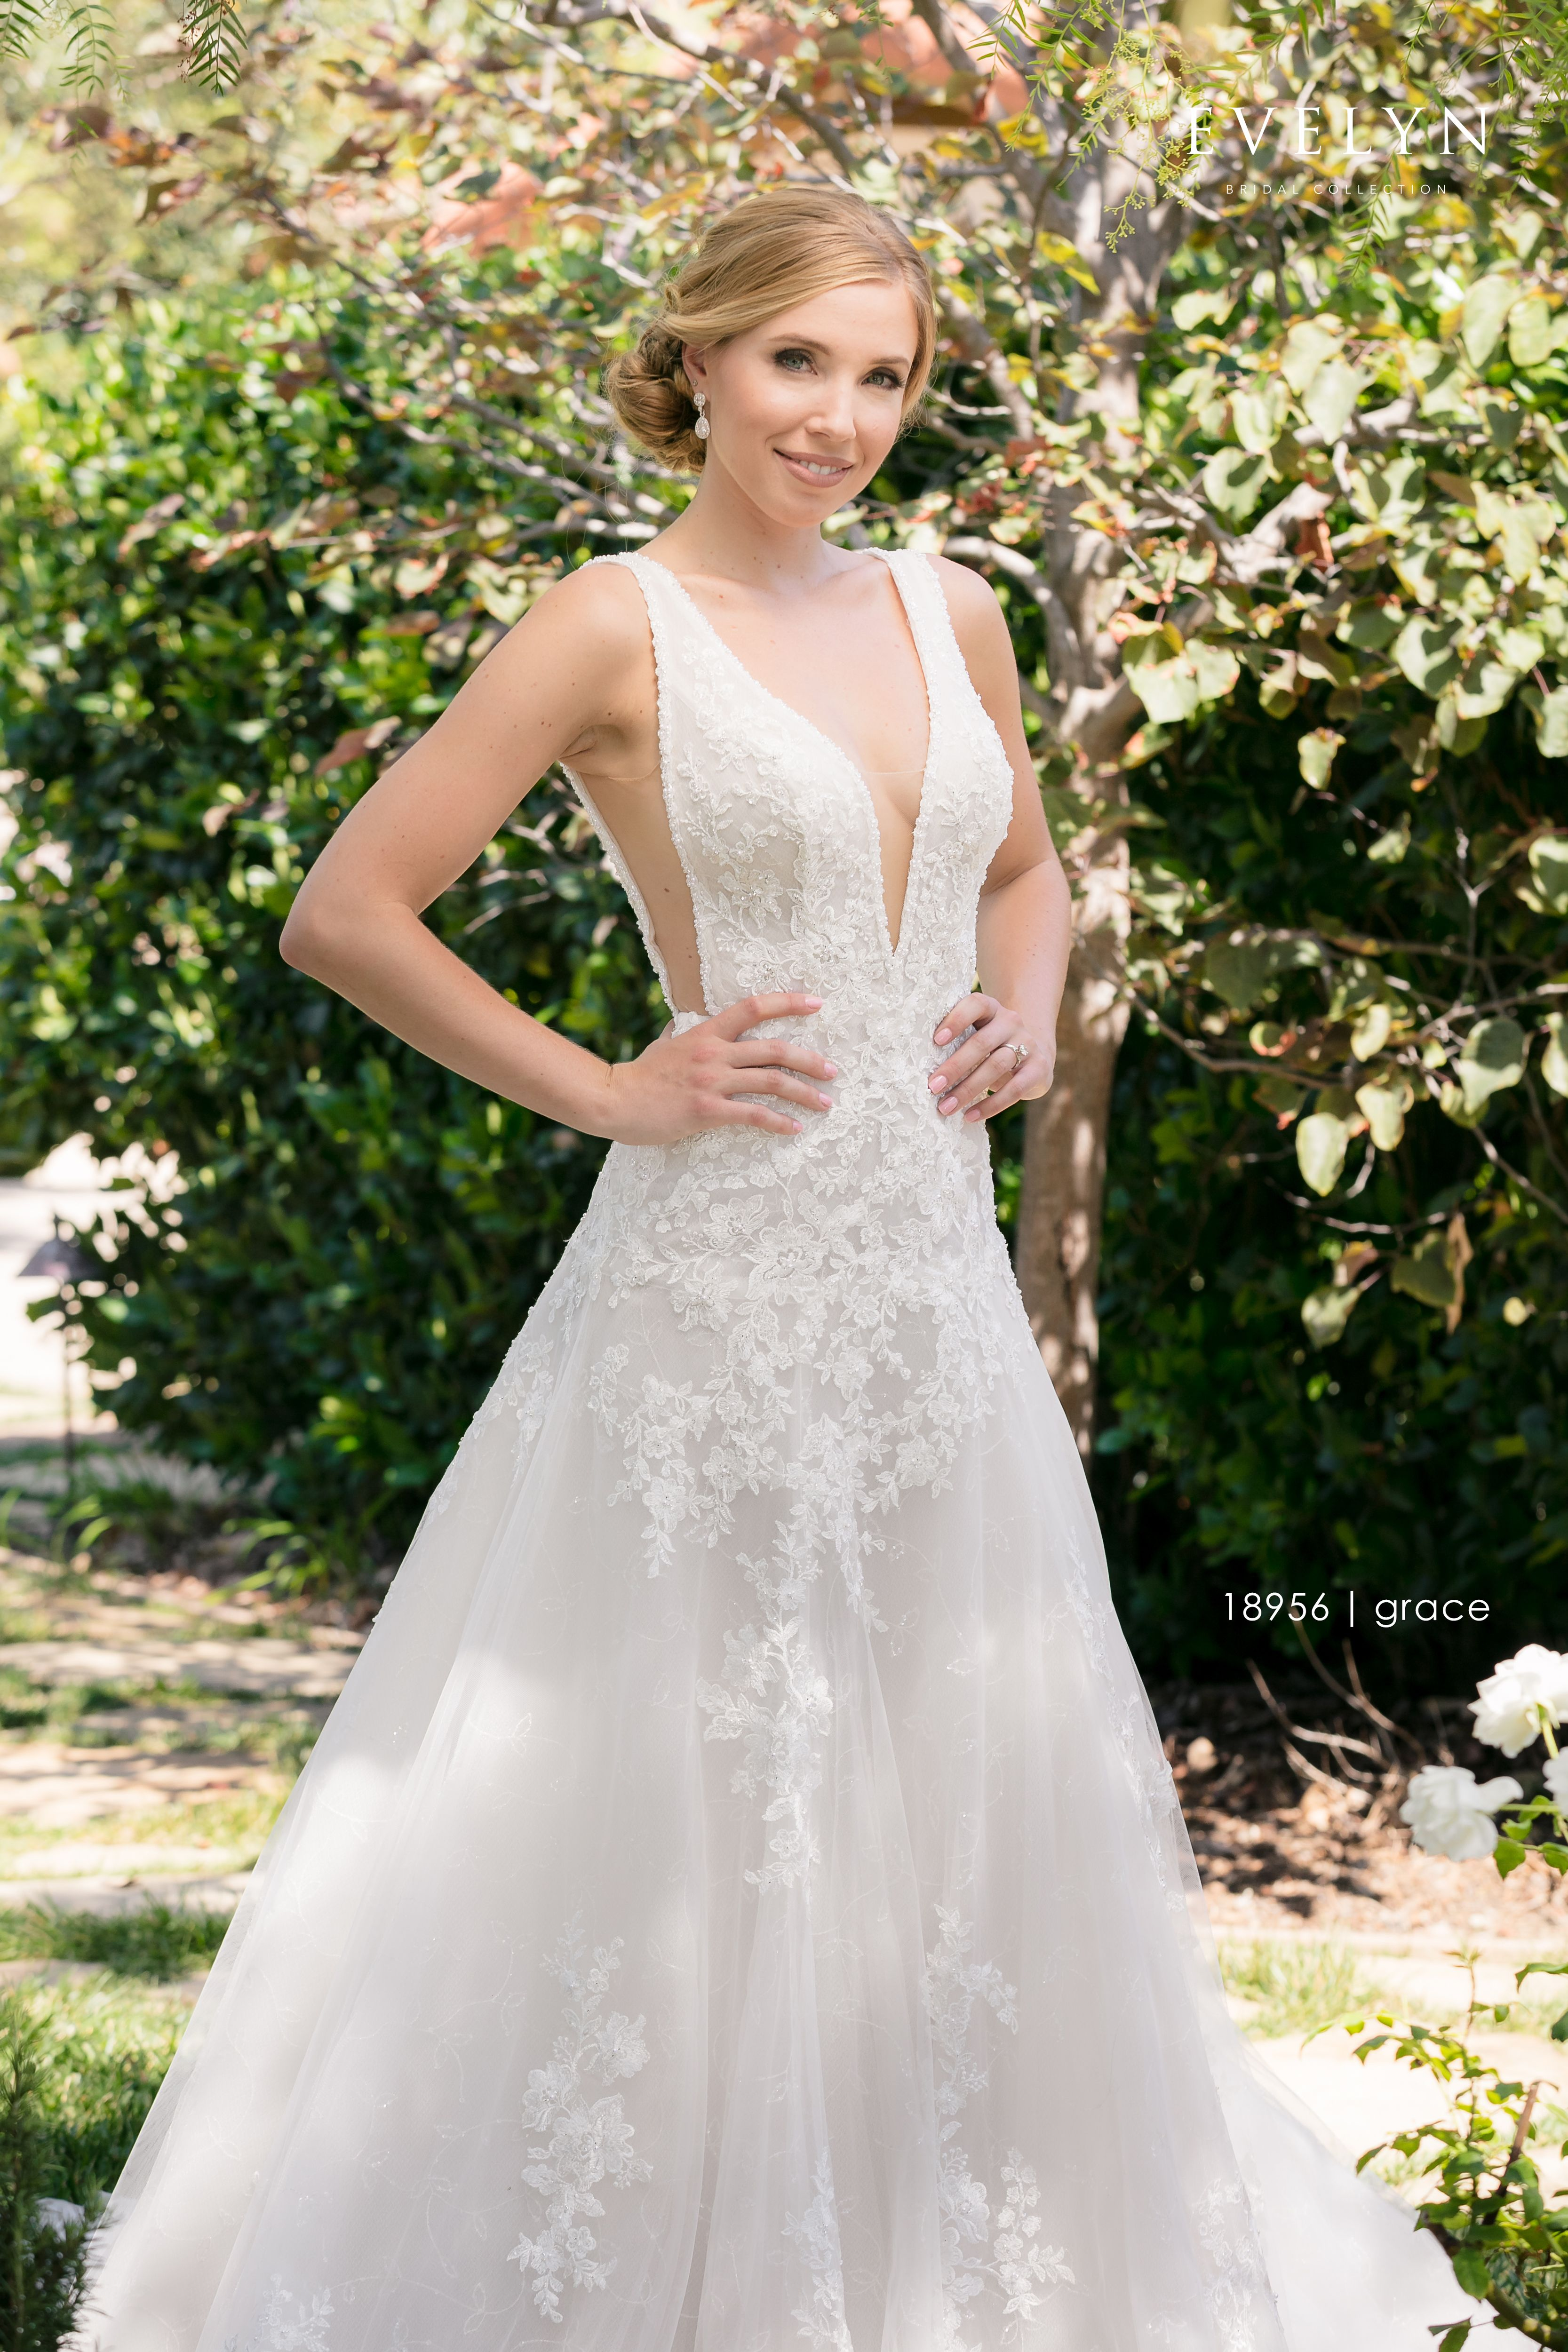 Evelyn Bridal | Grace 18956 Dropped waist tulle gown with plunging ...